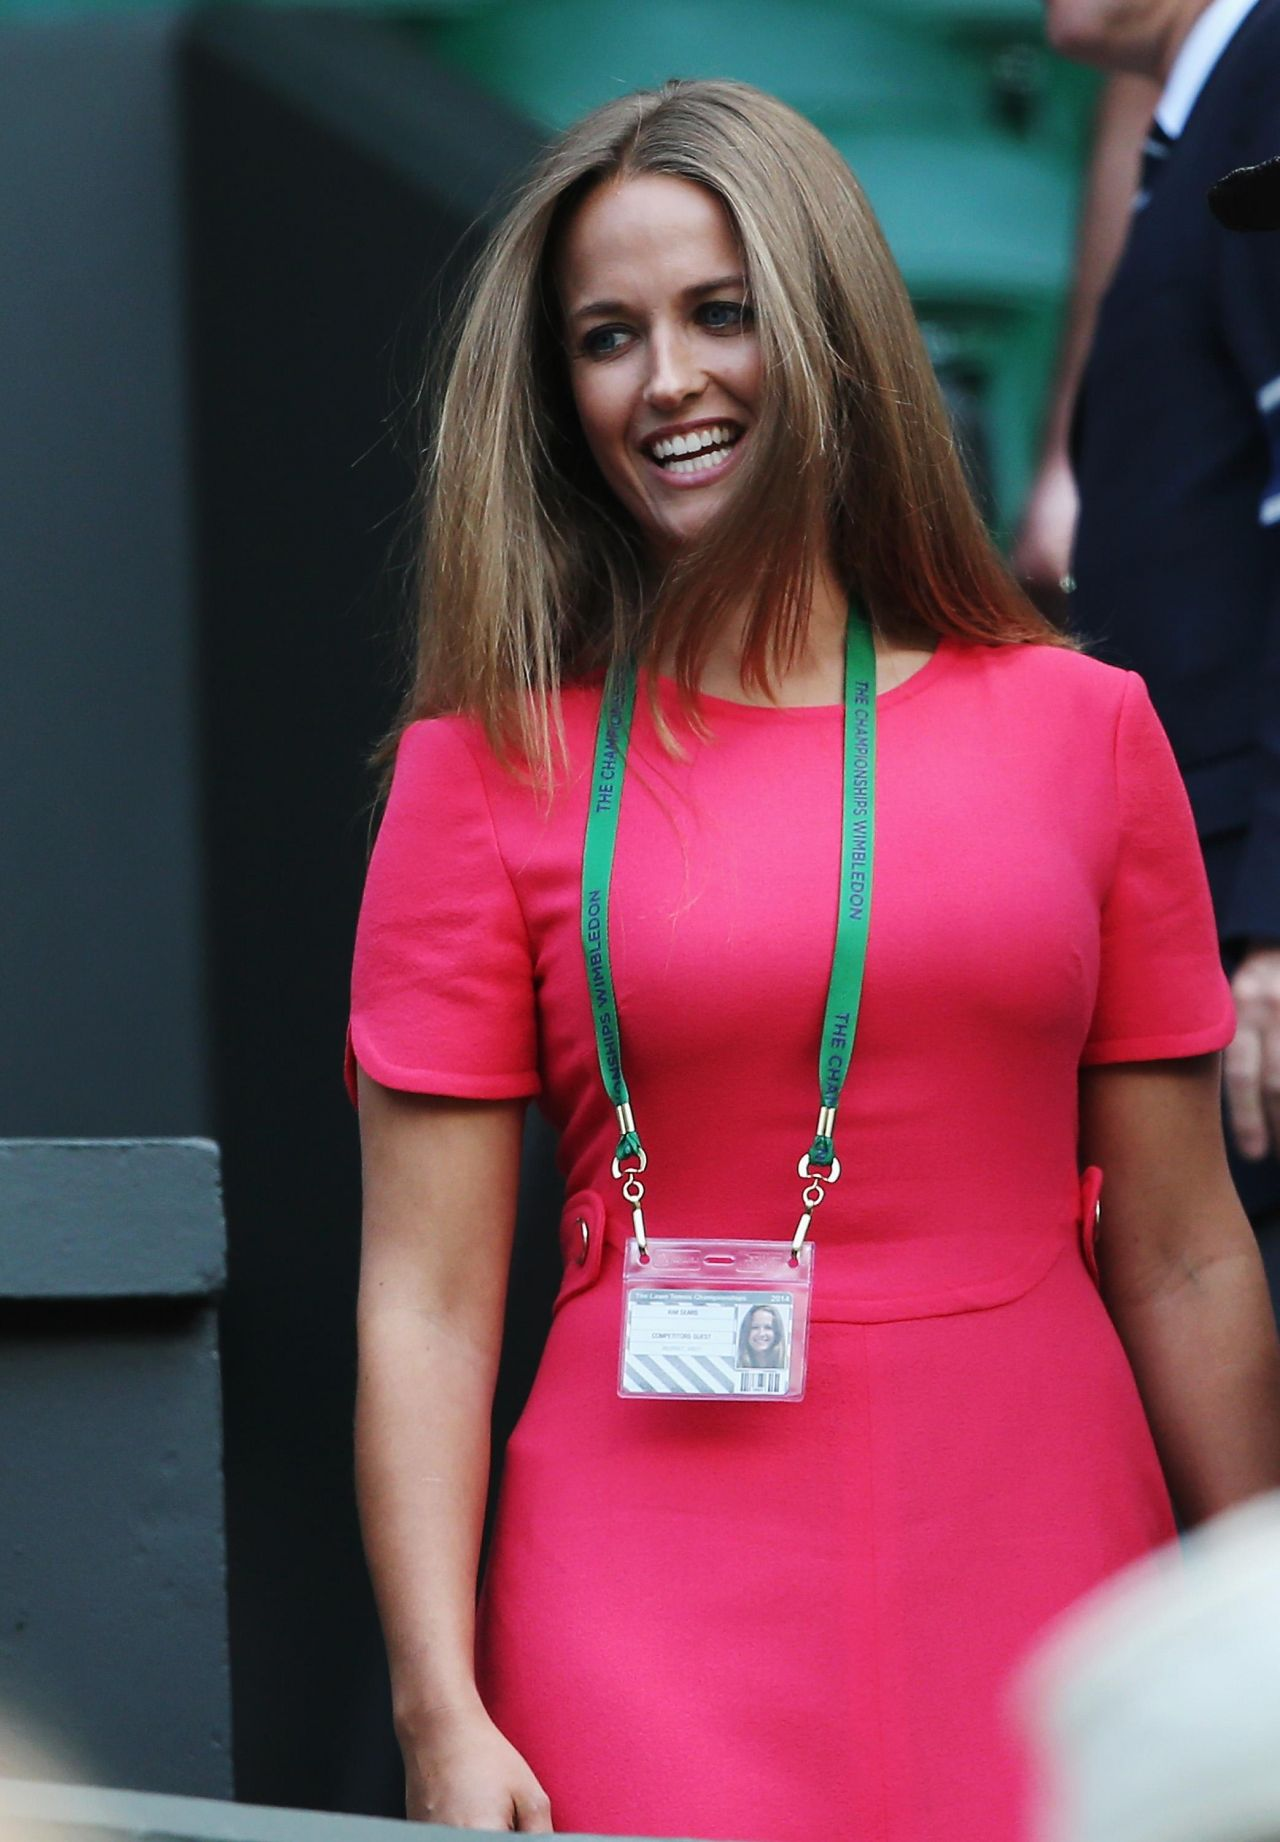 Kim Sears Wimbledon Championships 2014 July 2nd